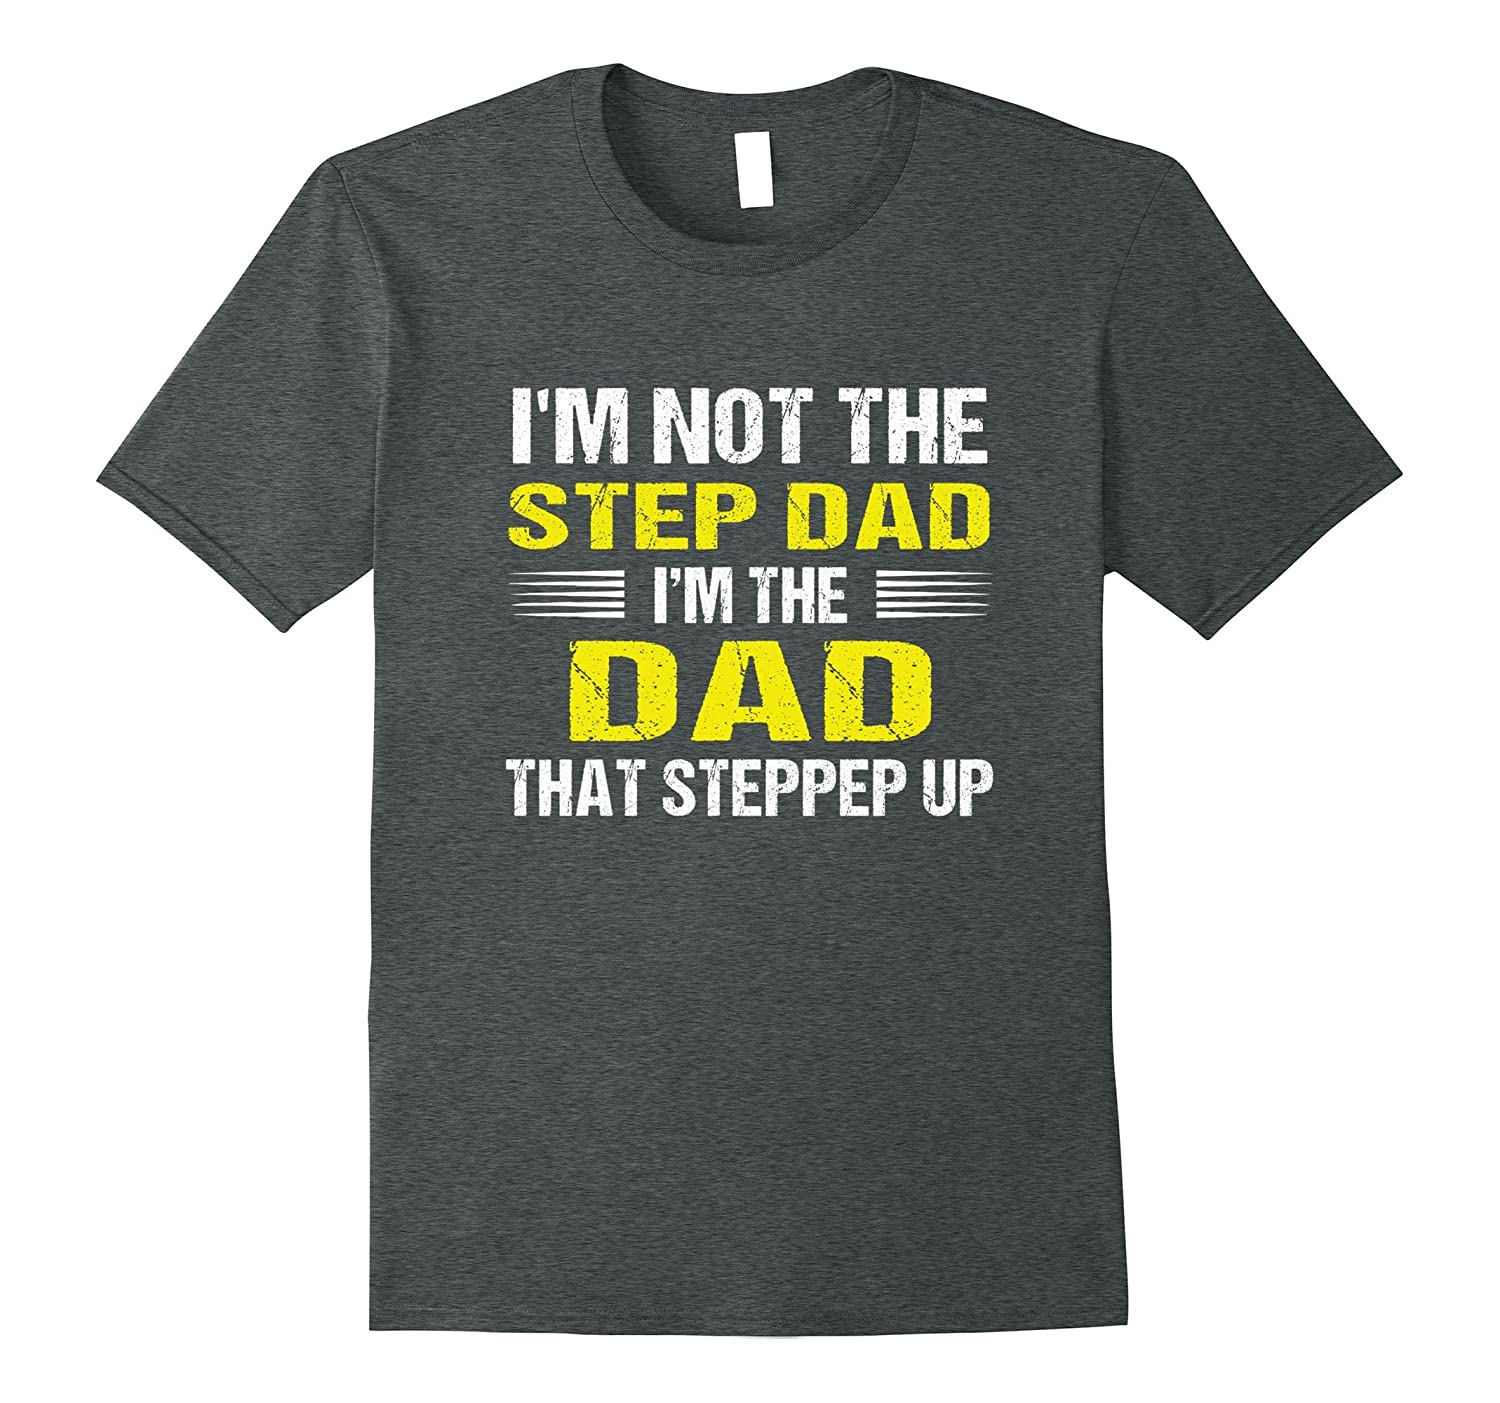 Mens I'm not the Step Dad I'm the Dad stepped up funny shirt